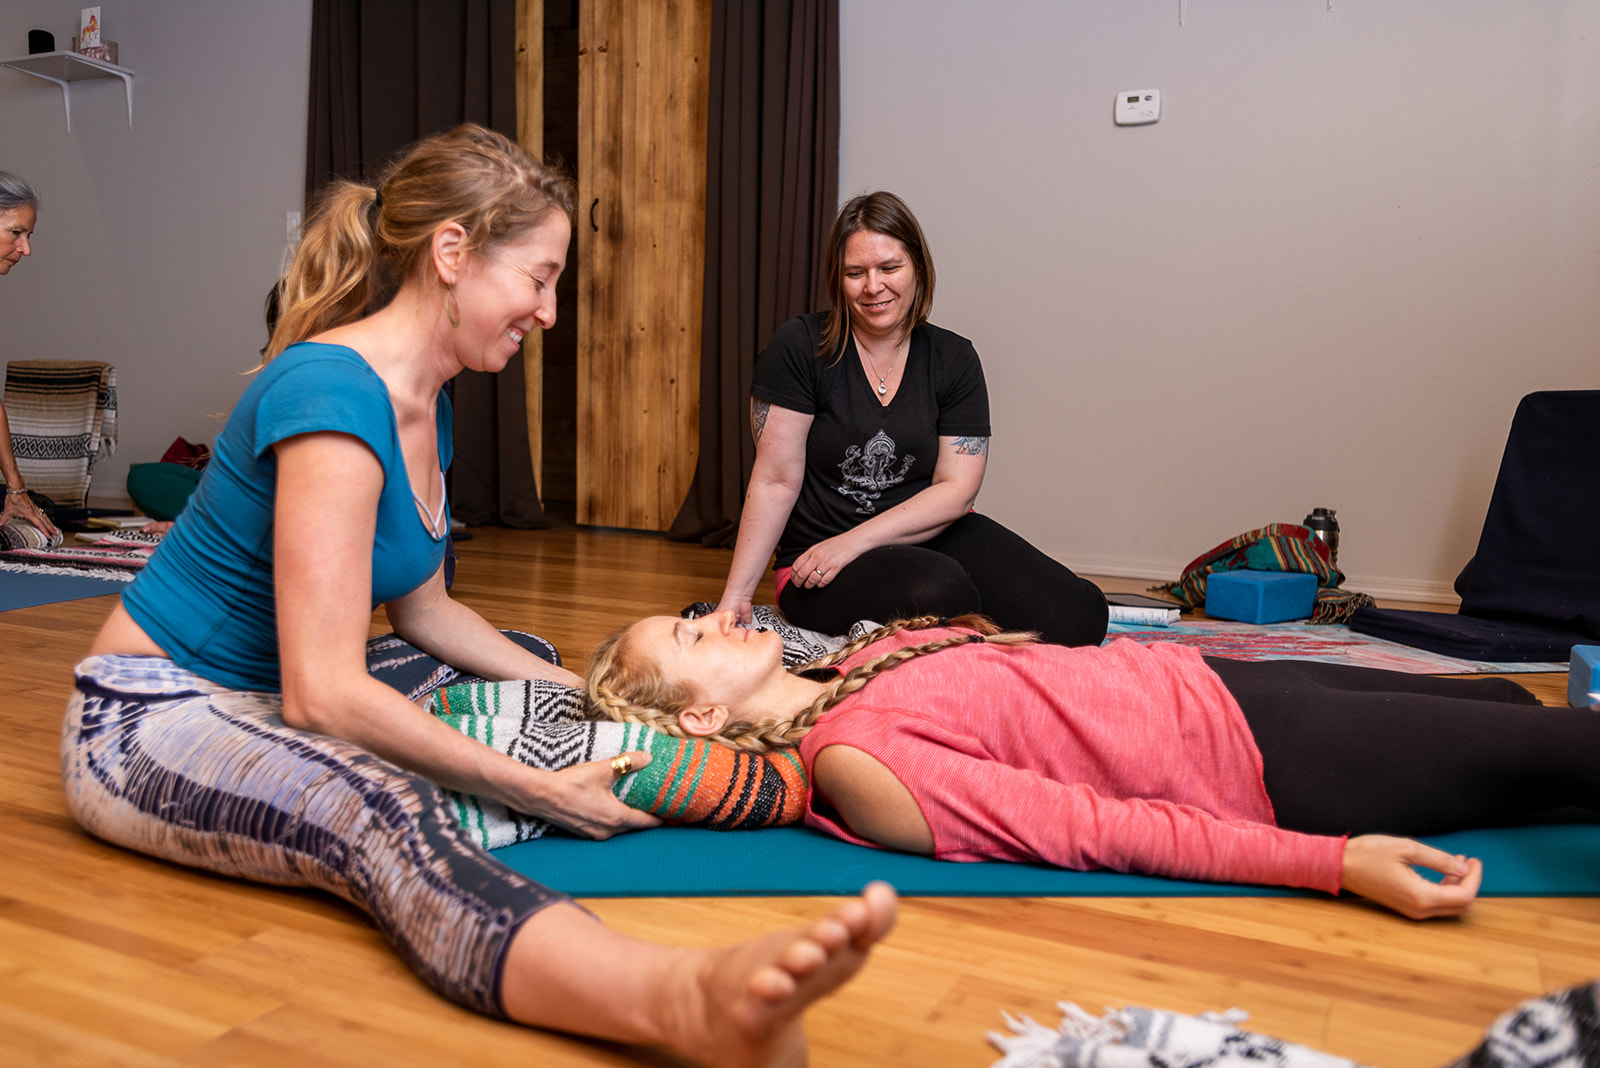 yin-yoga-teacher-training-durga-excursions-sedona-I-2019-9.jpg